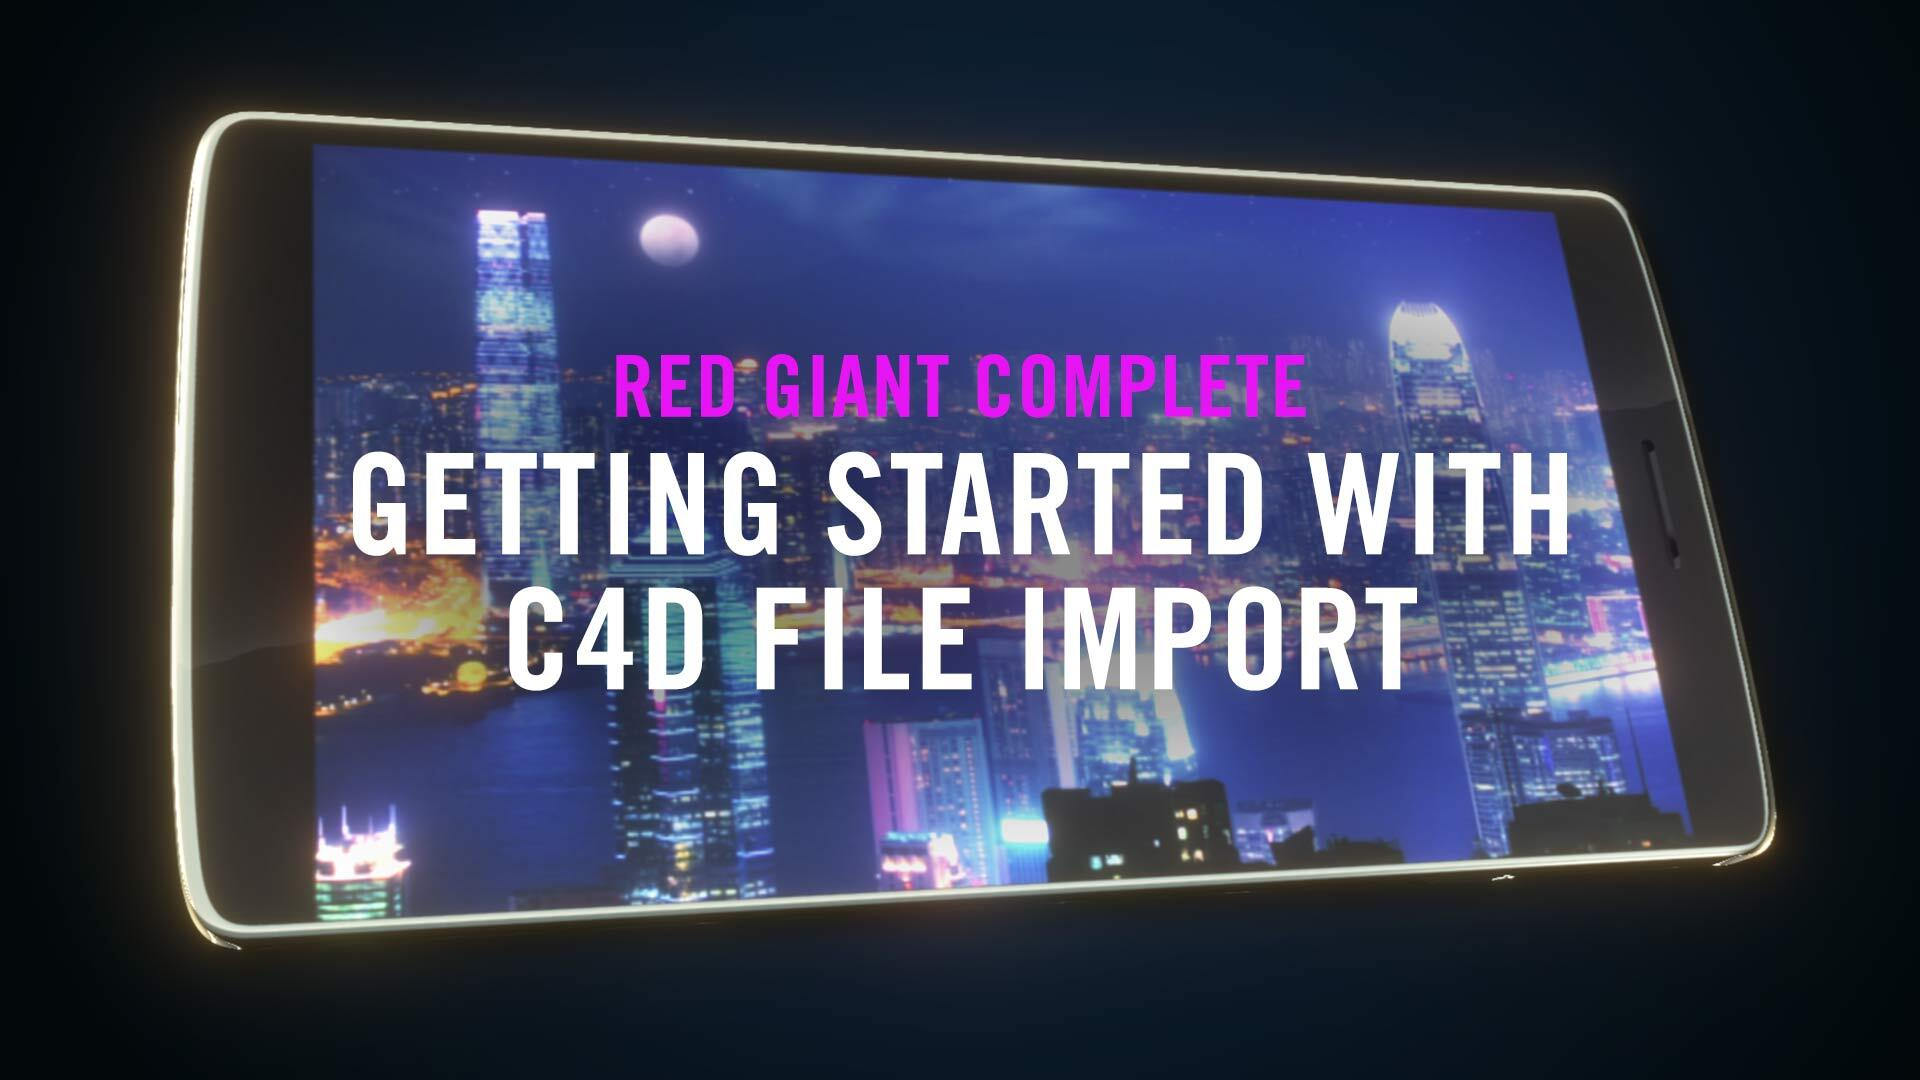 Getting Started with C4D File Import in Red Giant Complete